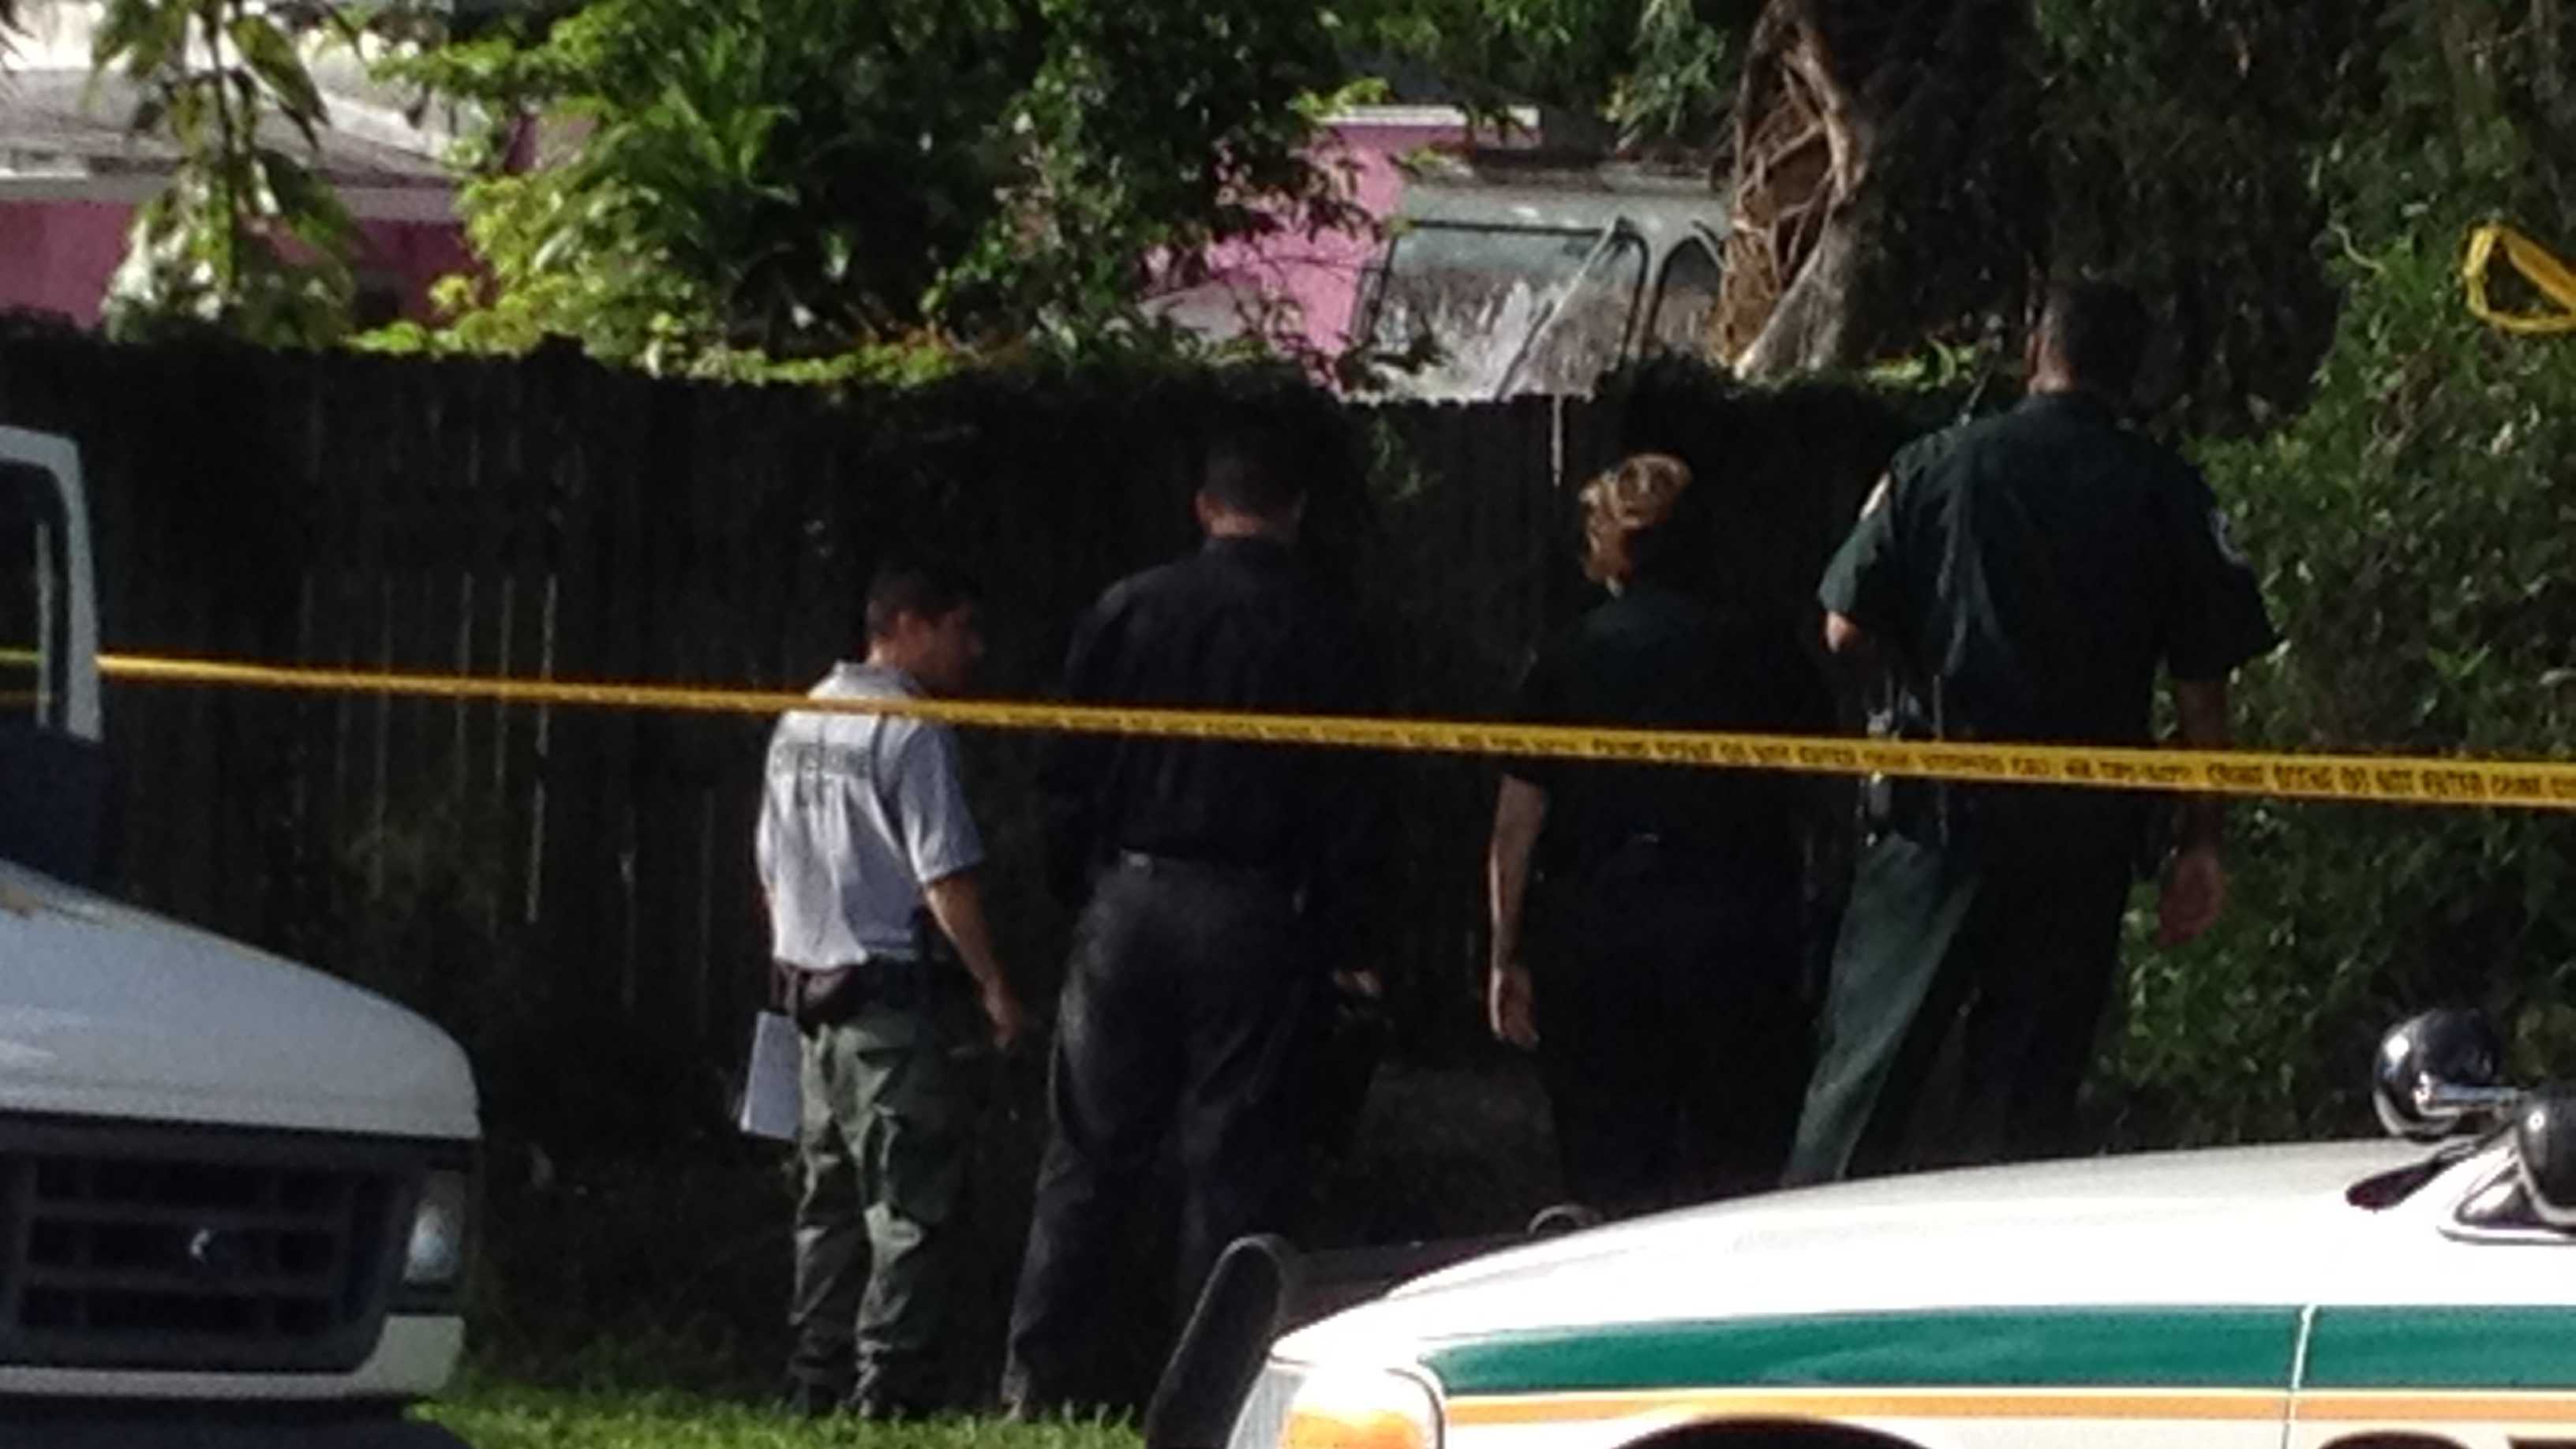 Sheriff's deputies investigate after a body is found in a canal in West Palm Beach.